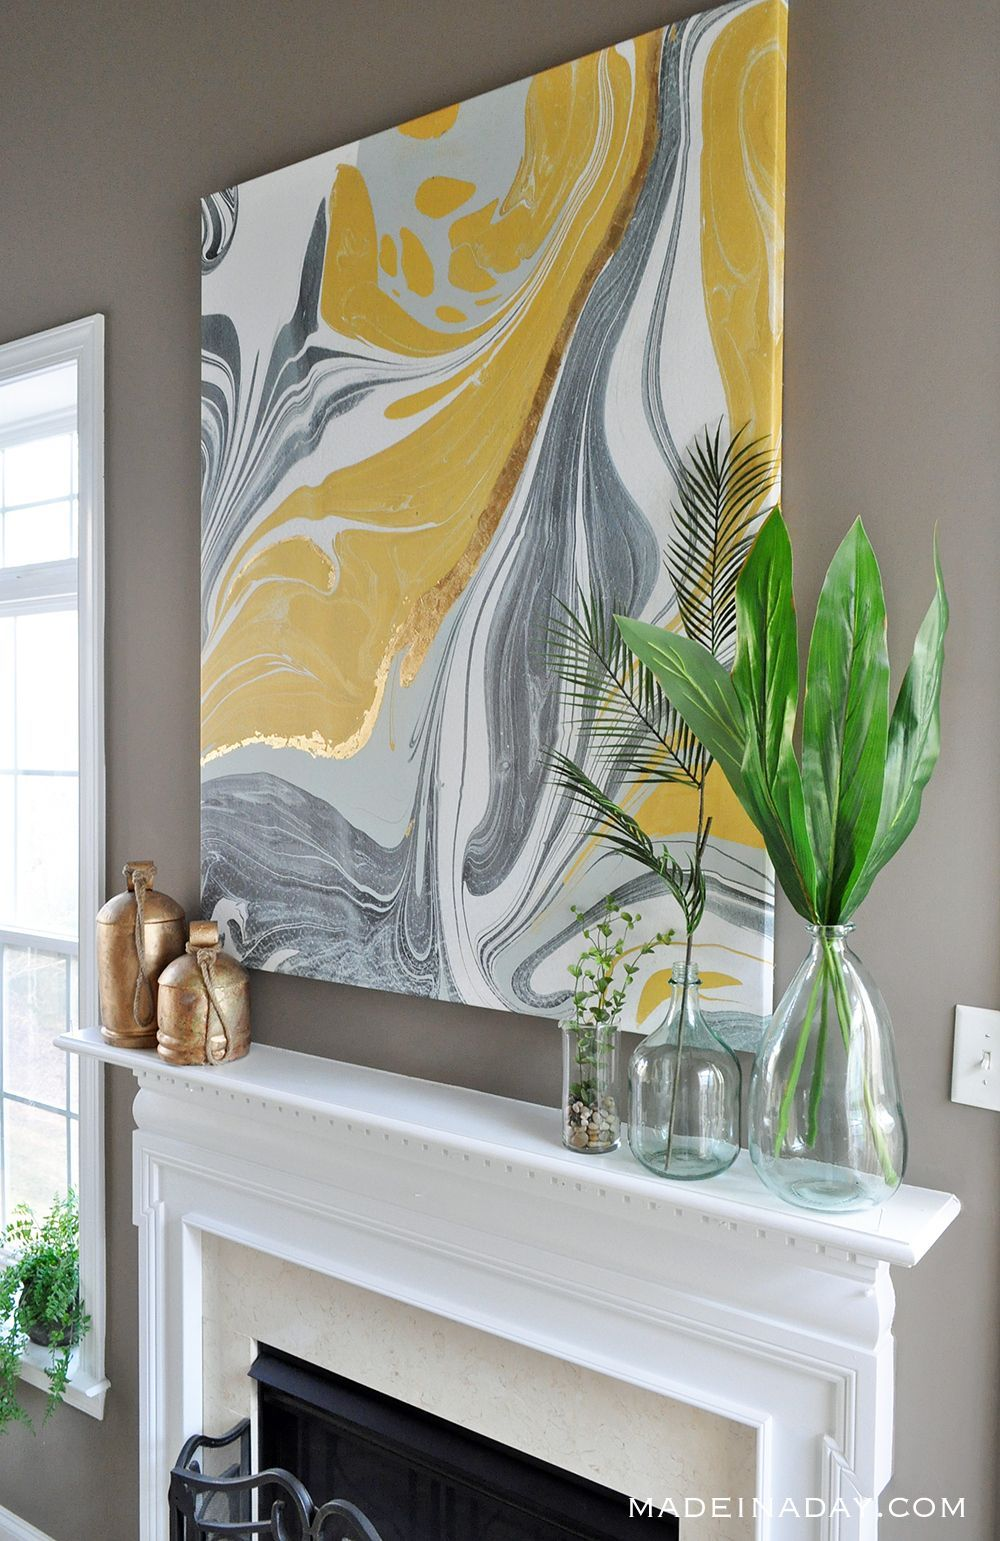 Gold Gilded Marble Canvas: Glam Up Your Wall Art Gold Gilded Marble Canvas: Glam up Your Wall Art Wall Art canvas wall art